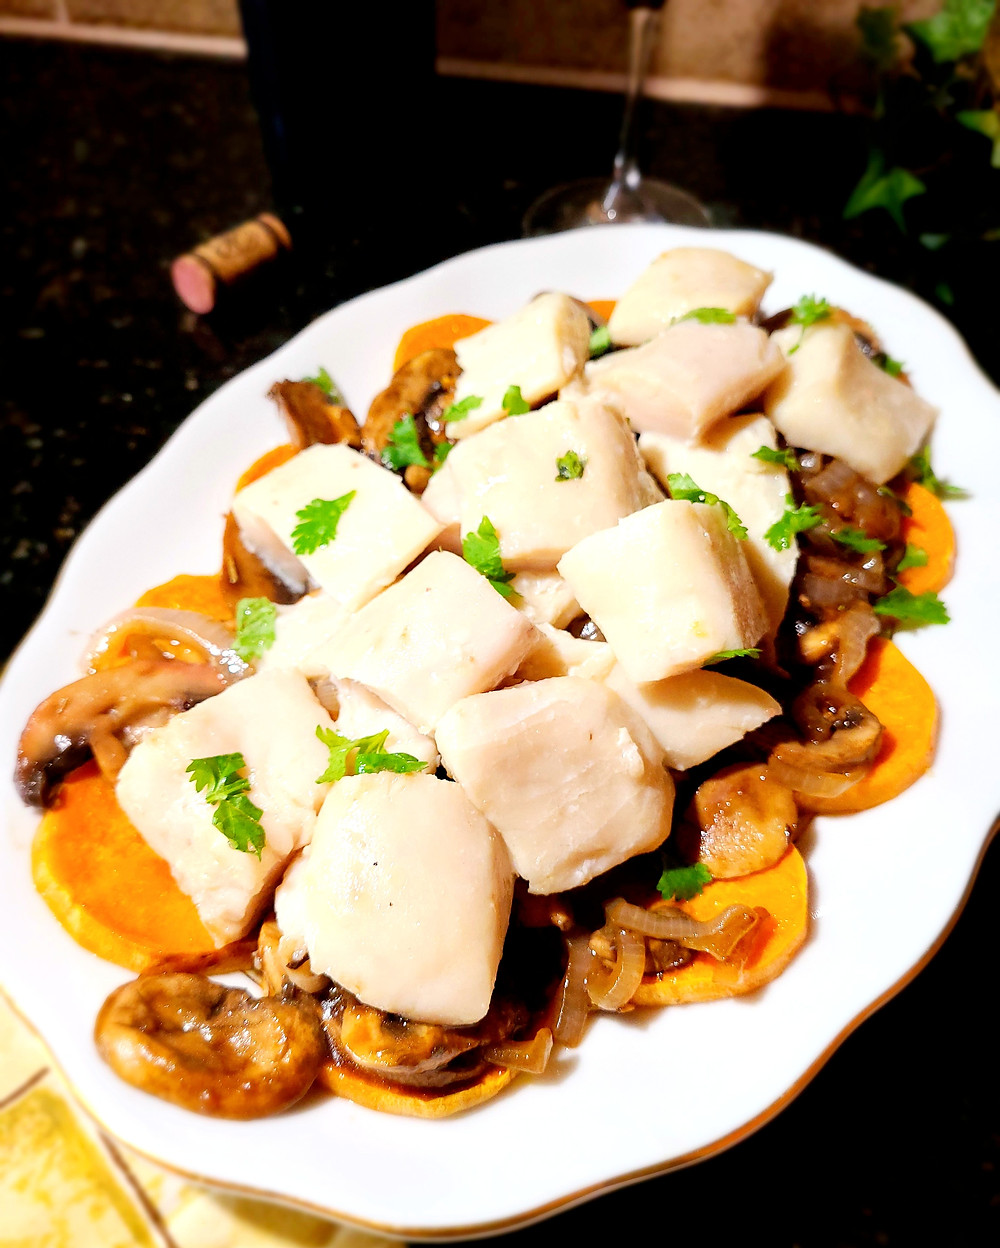 Poached White Fish Over Sweet Potatoes, Mushrooms, & Onions (Gluten-free, No Soy/Dairy/Grains)